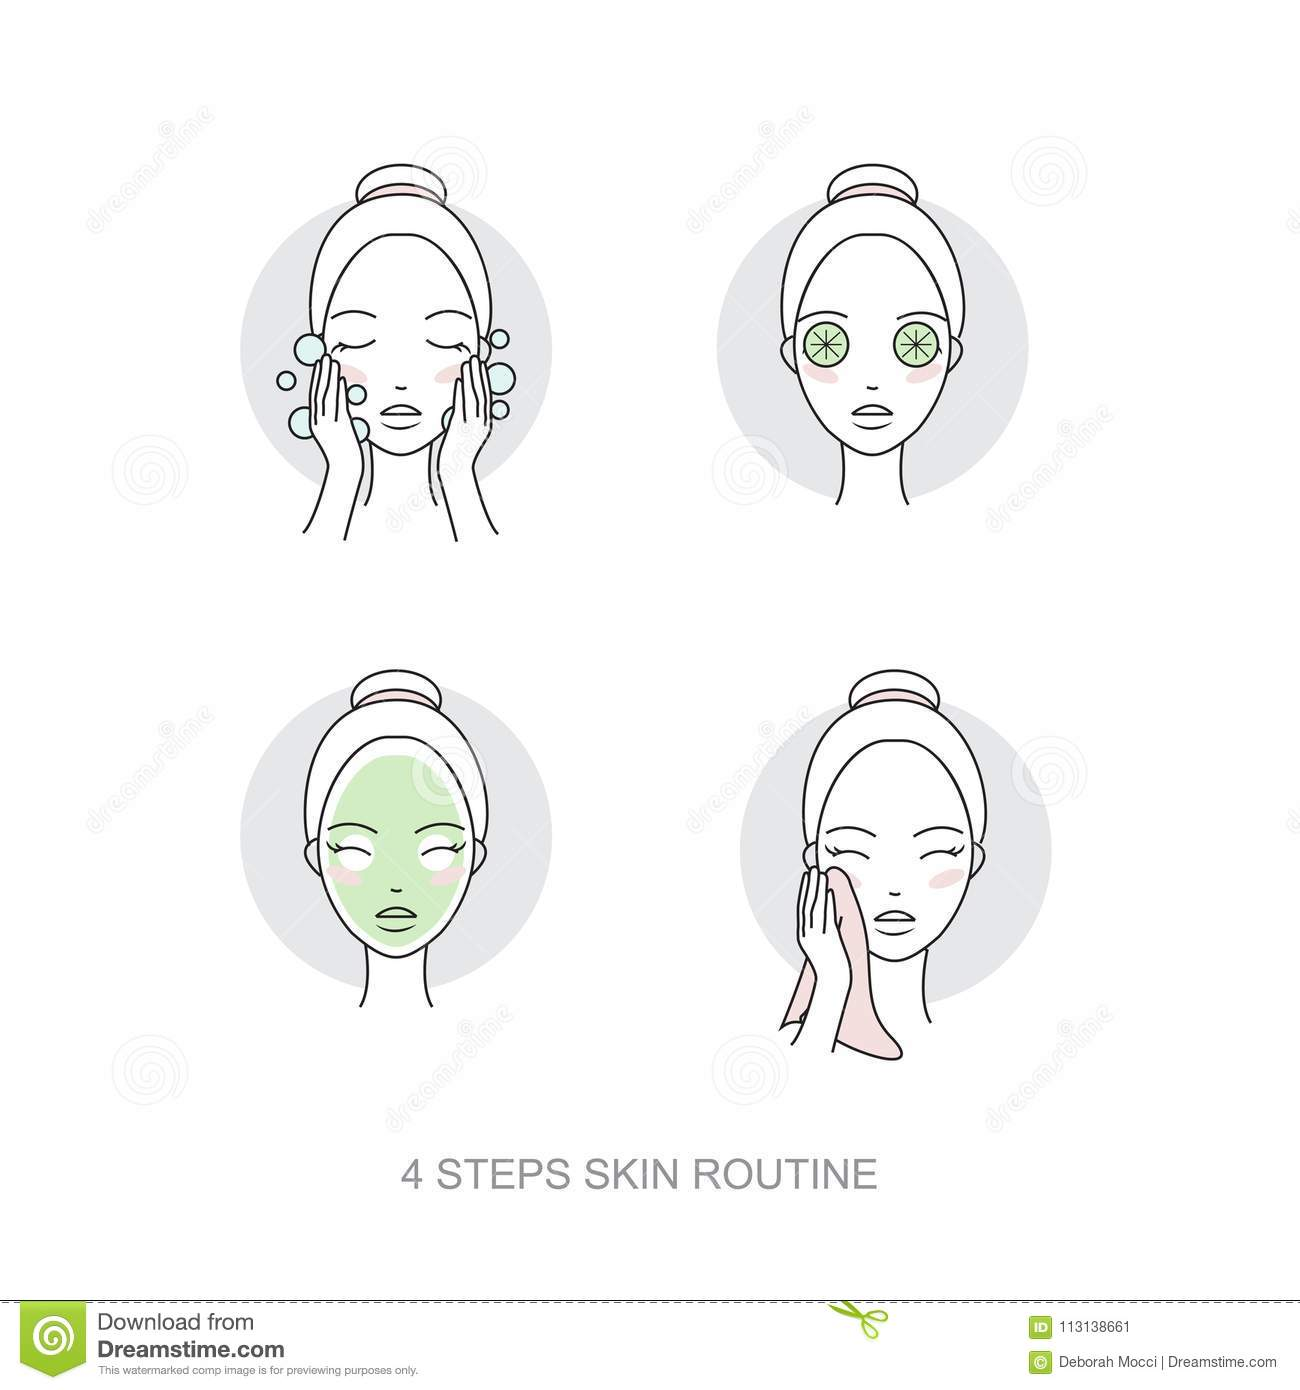 Woman skincare routine Icon collection. Steps how to apply face make-up. Vector isolated illustrations set.